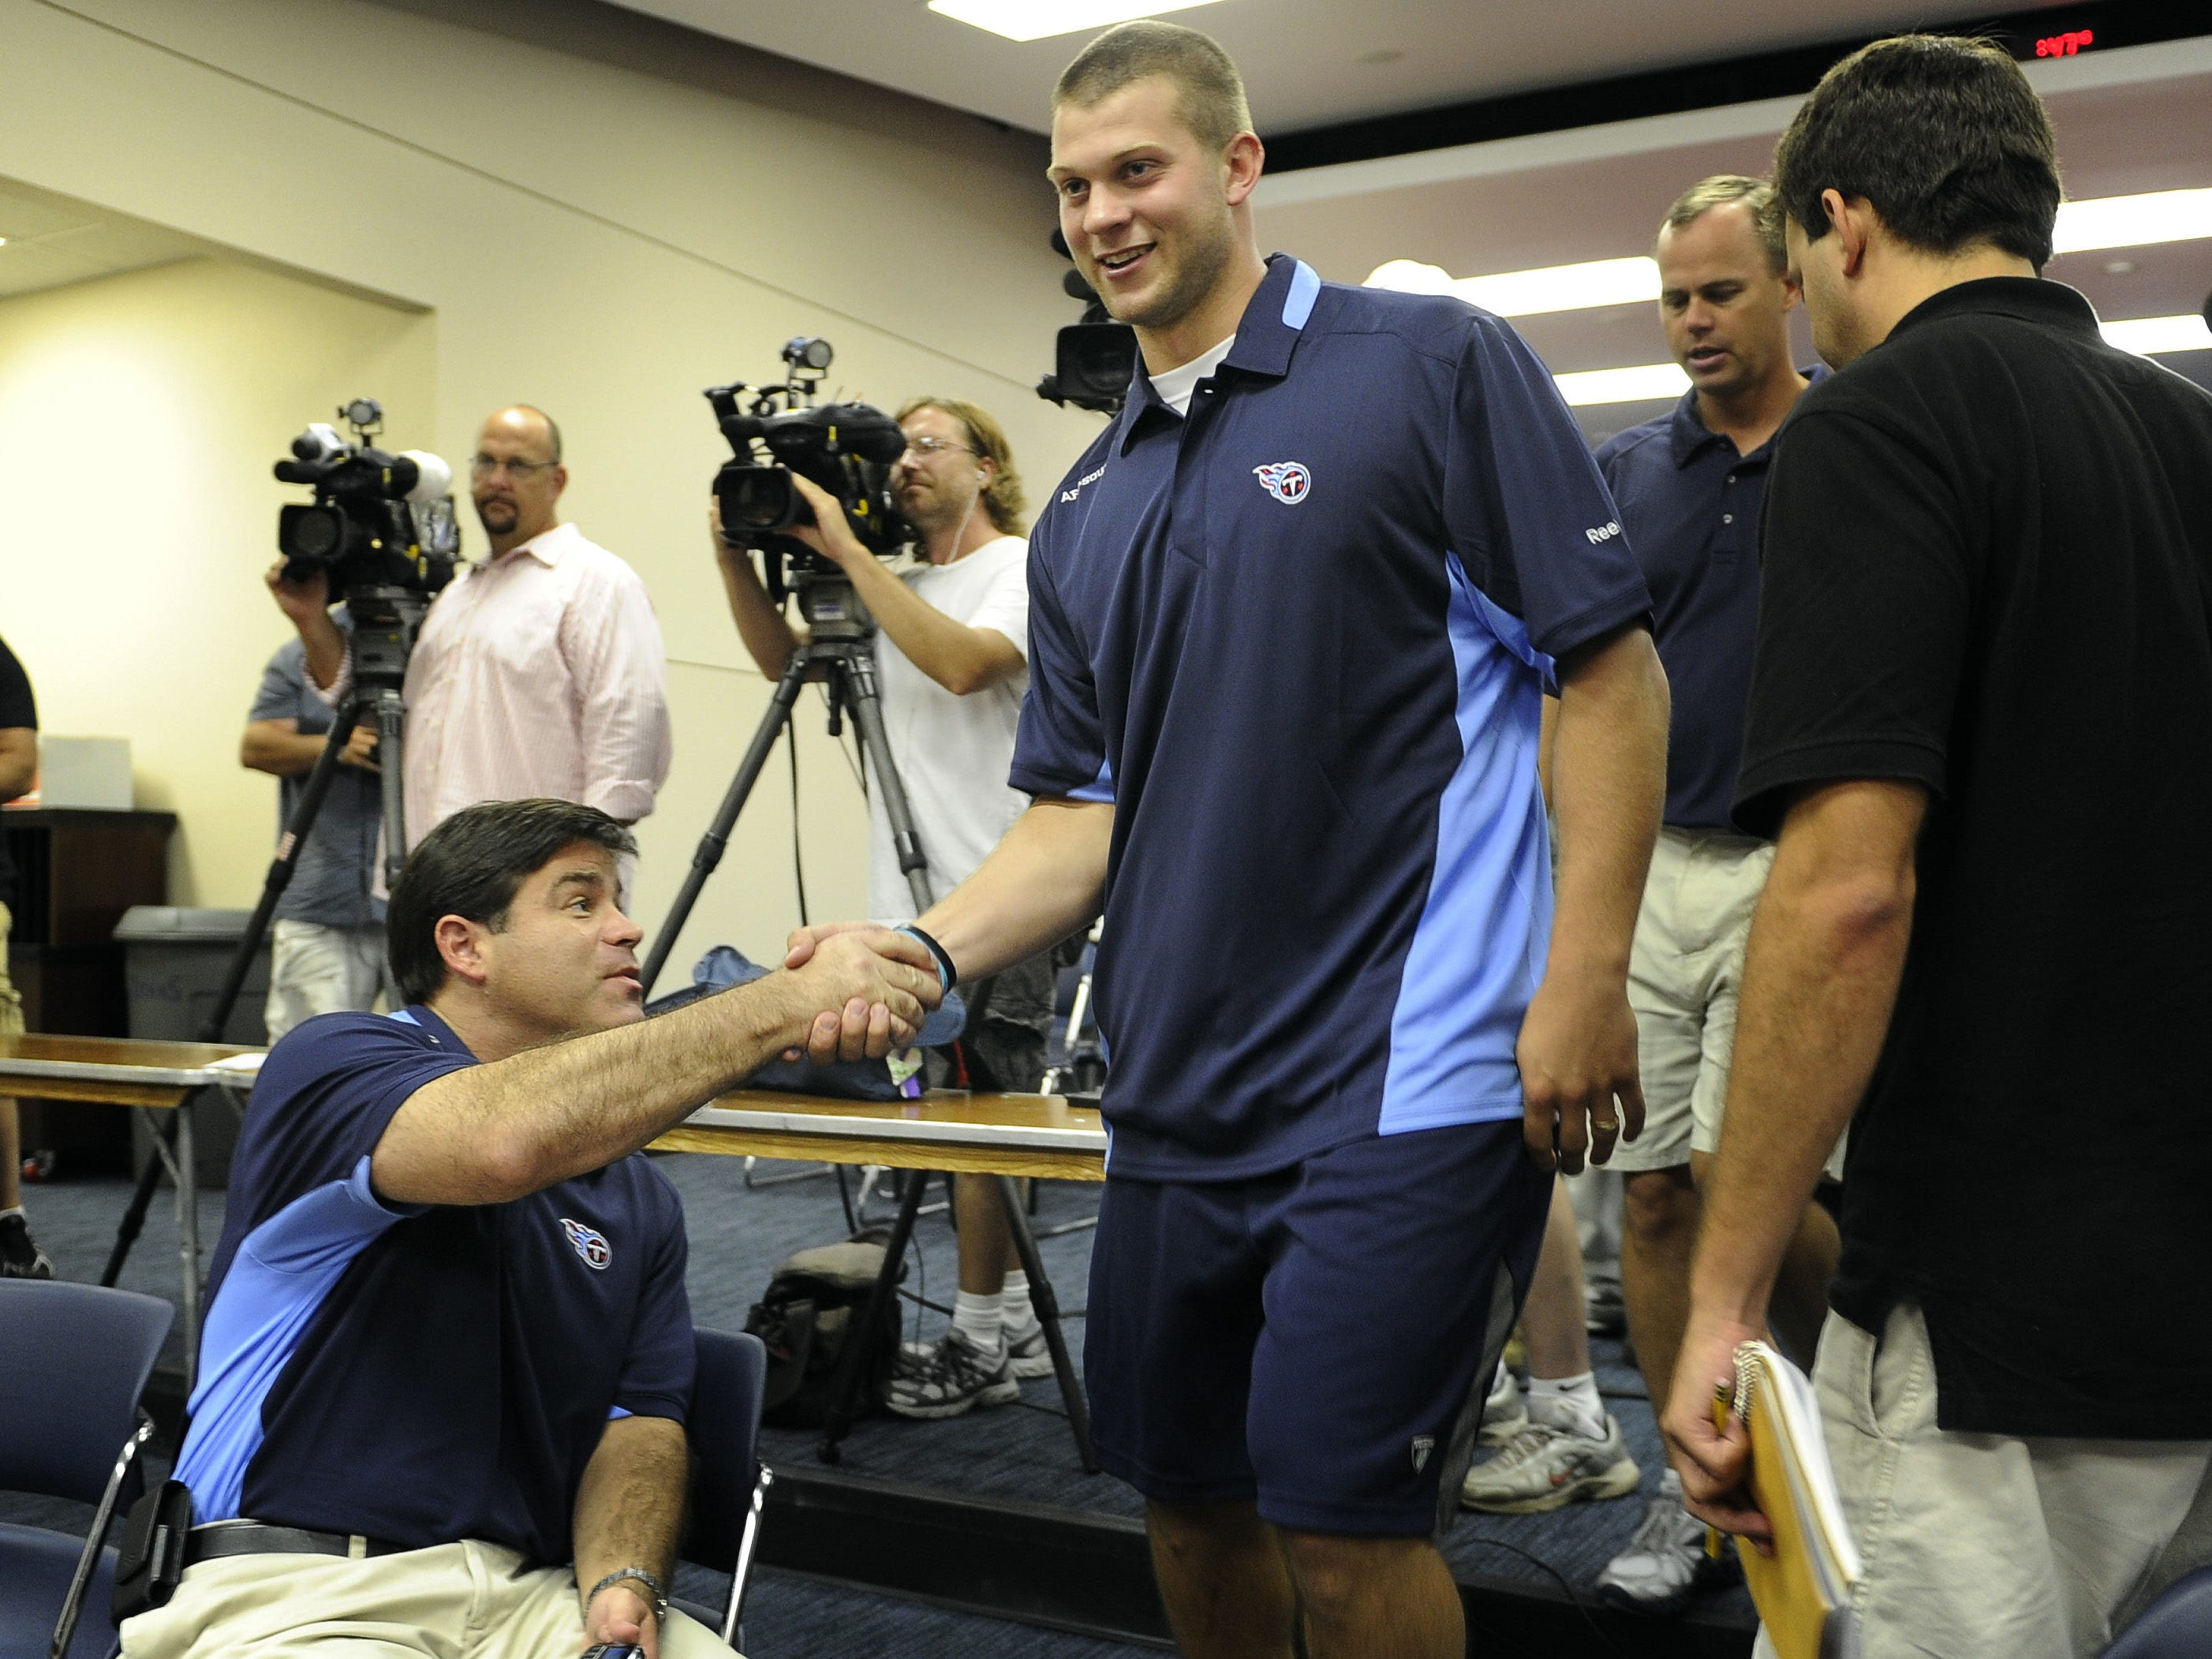 Titans radio personality Mike Keith shakes hands with Titans first-round draft pick Jake Locker as he enters a press conference at Baptist Sports Park Friday July 29, 2011.